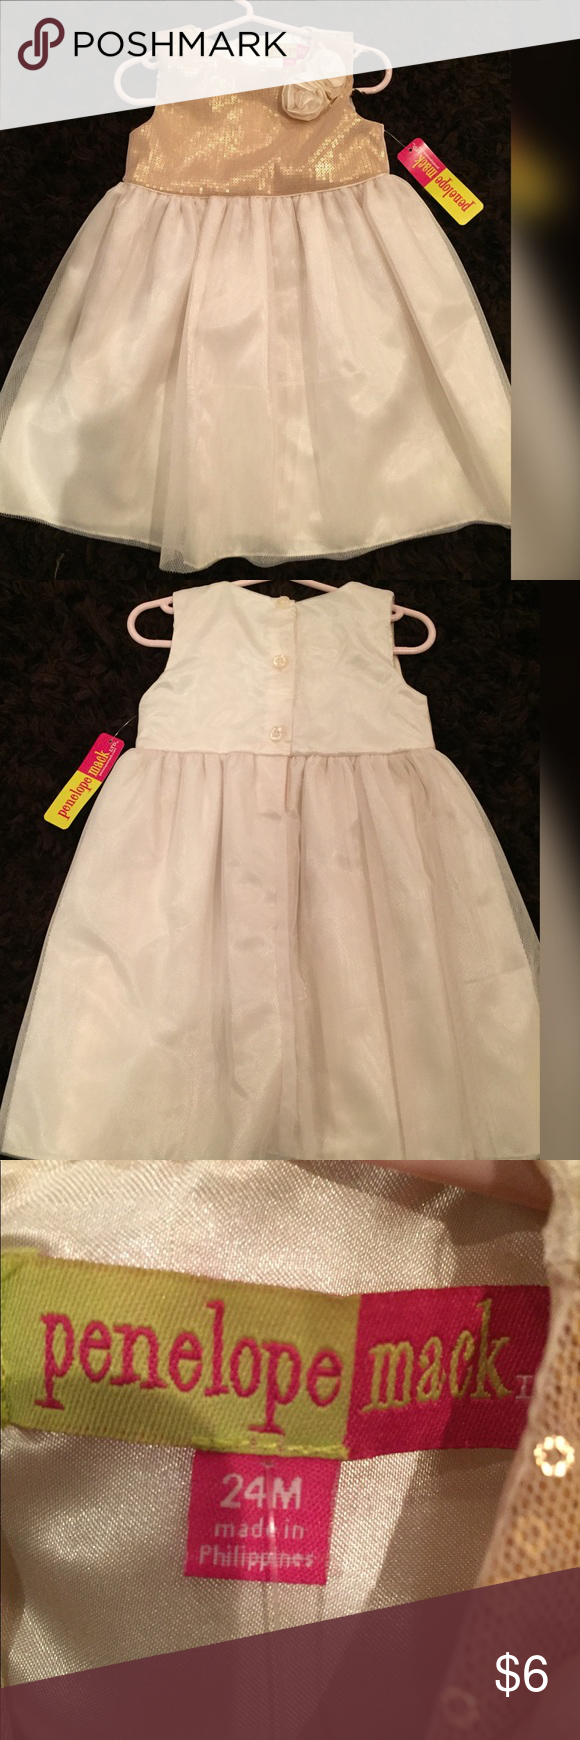 Pink and gold dress for kids  Penelope Mack  month gold dress NBW  month size gold and white